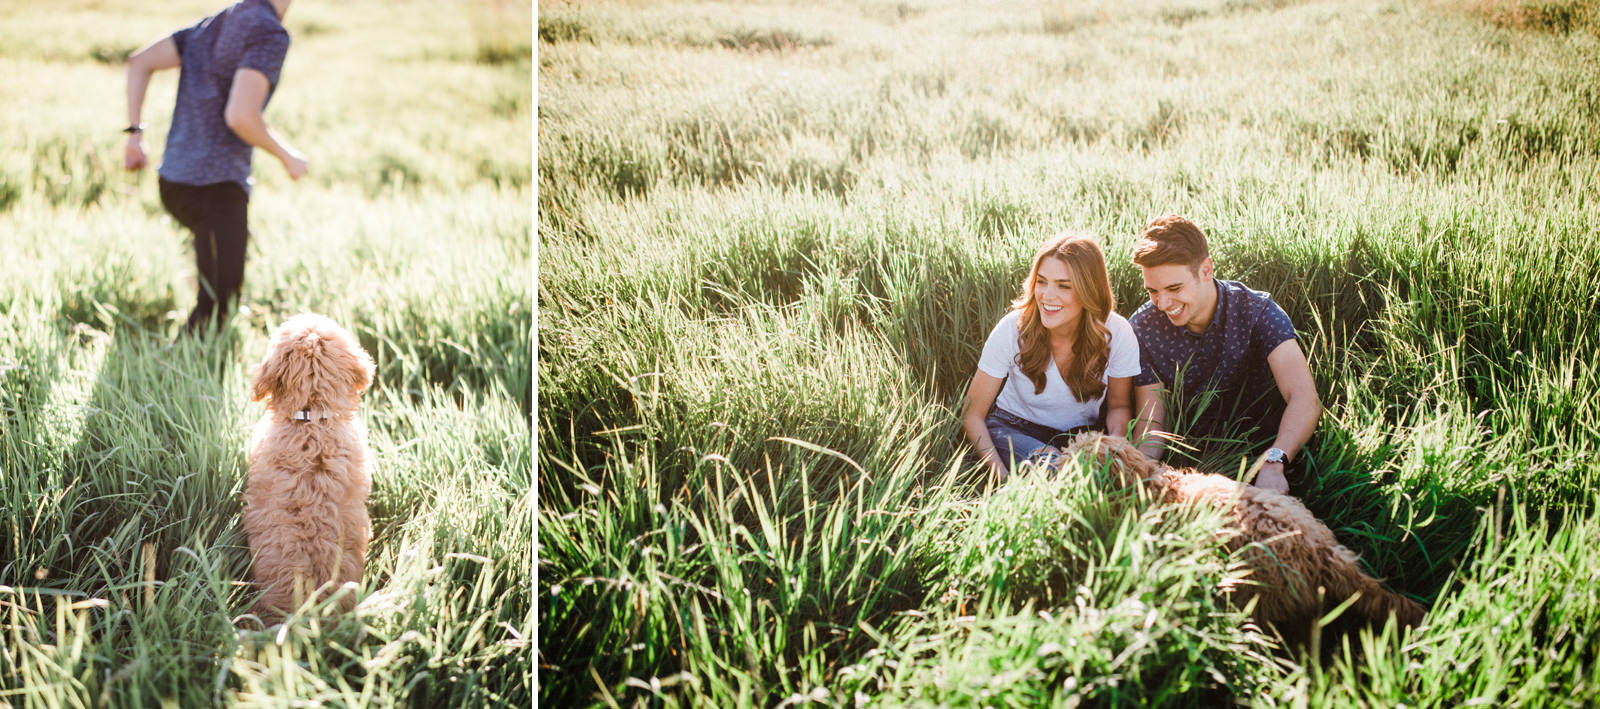 046-summery-engagement-session-with-a-goldendoodle-at-discovery-park-on-film.jpg